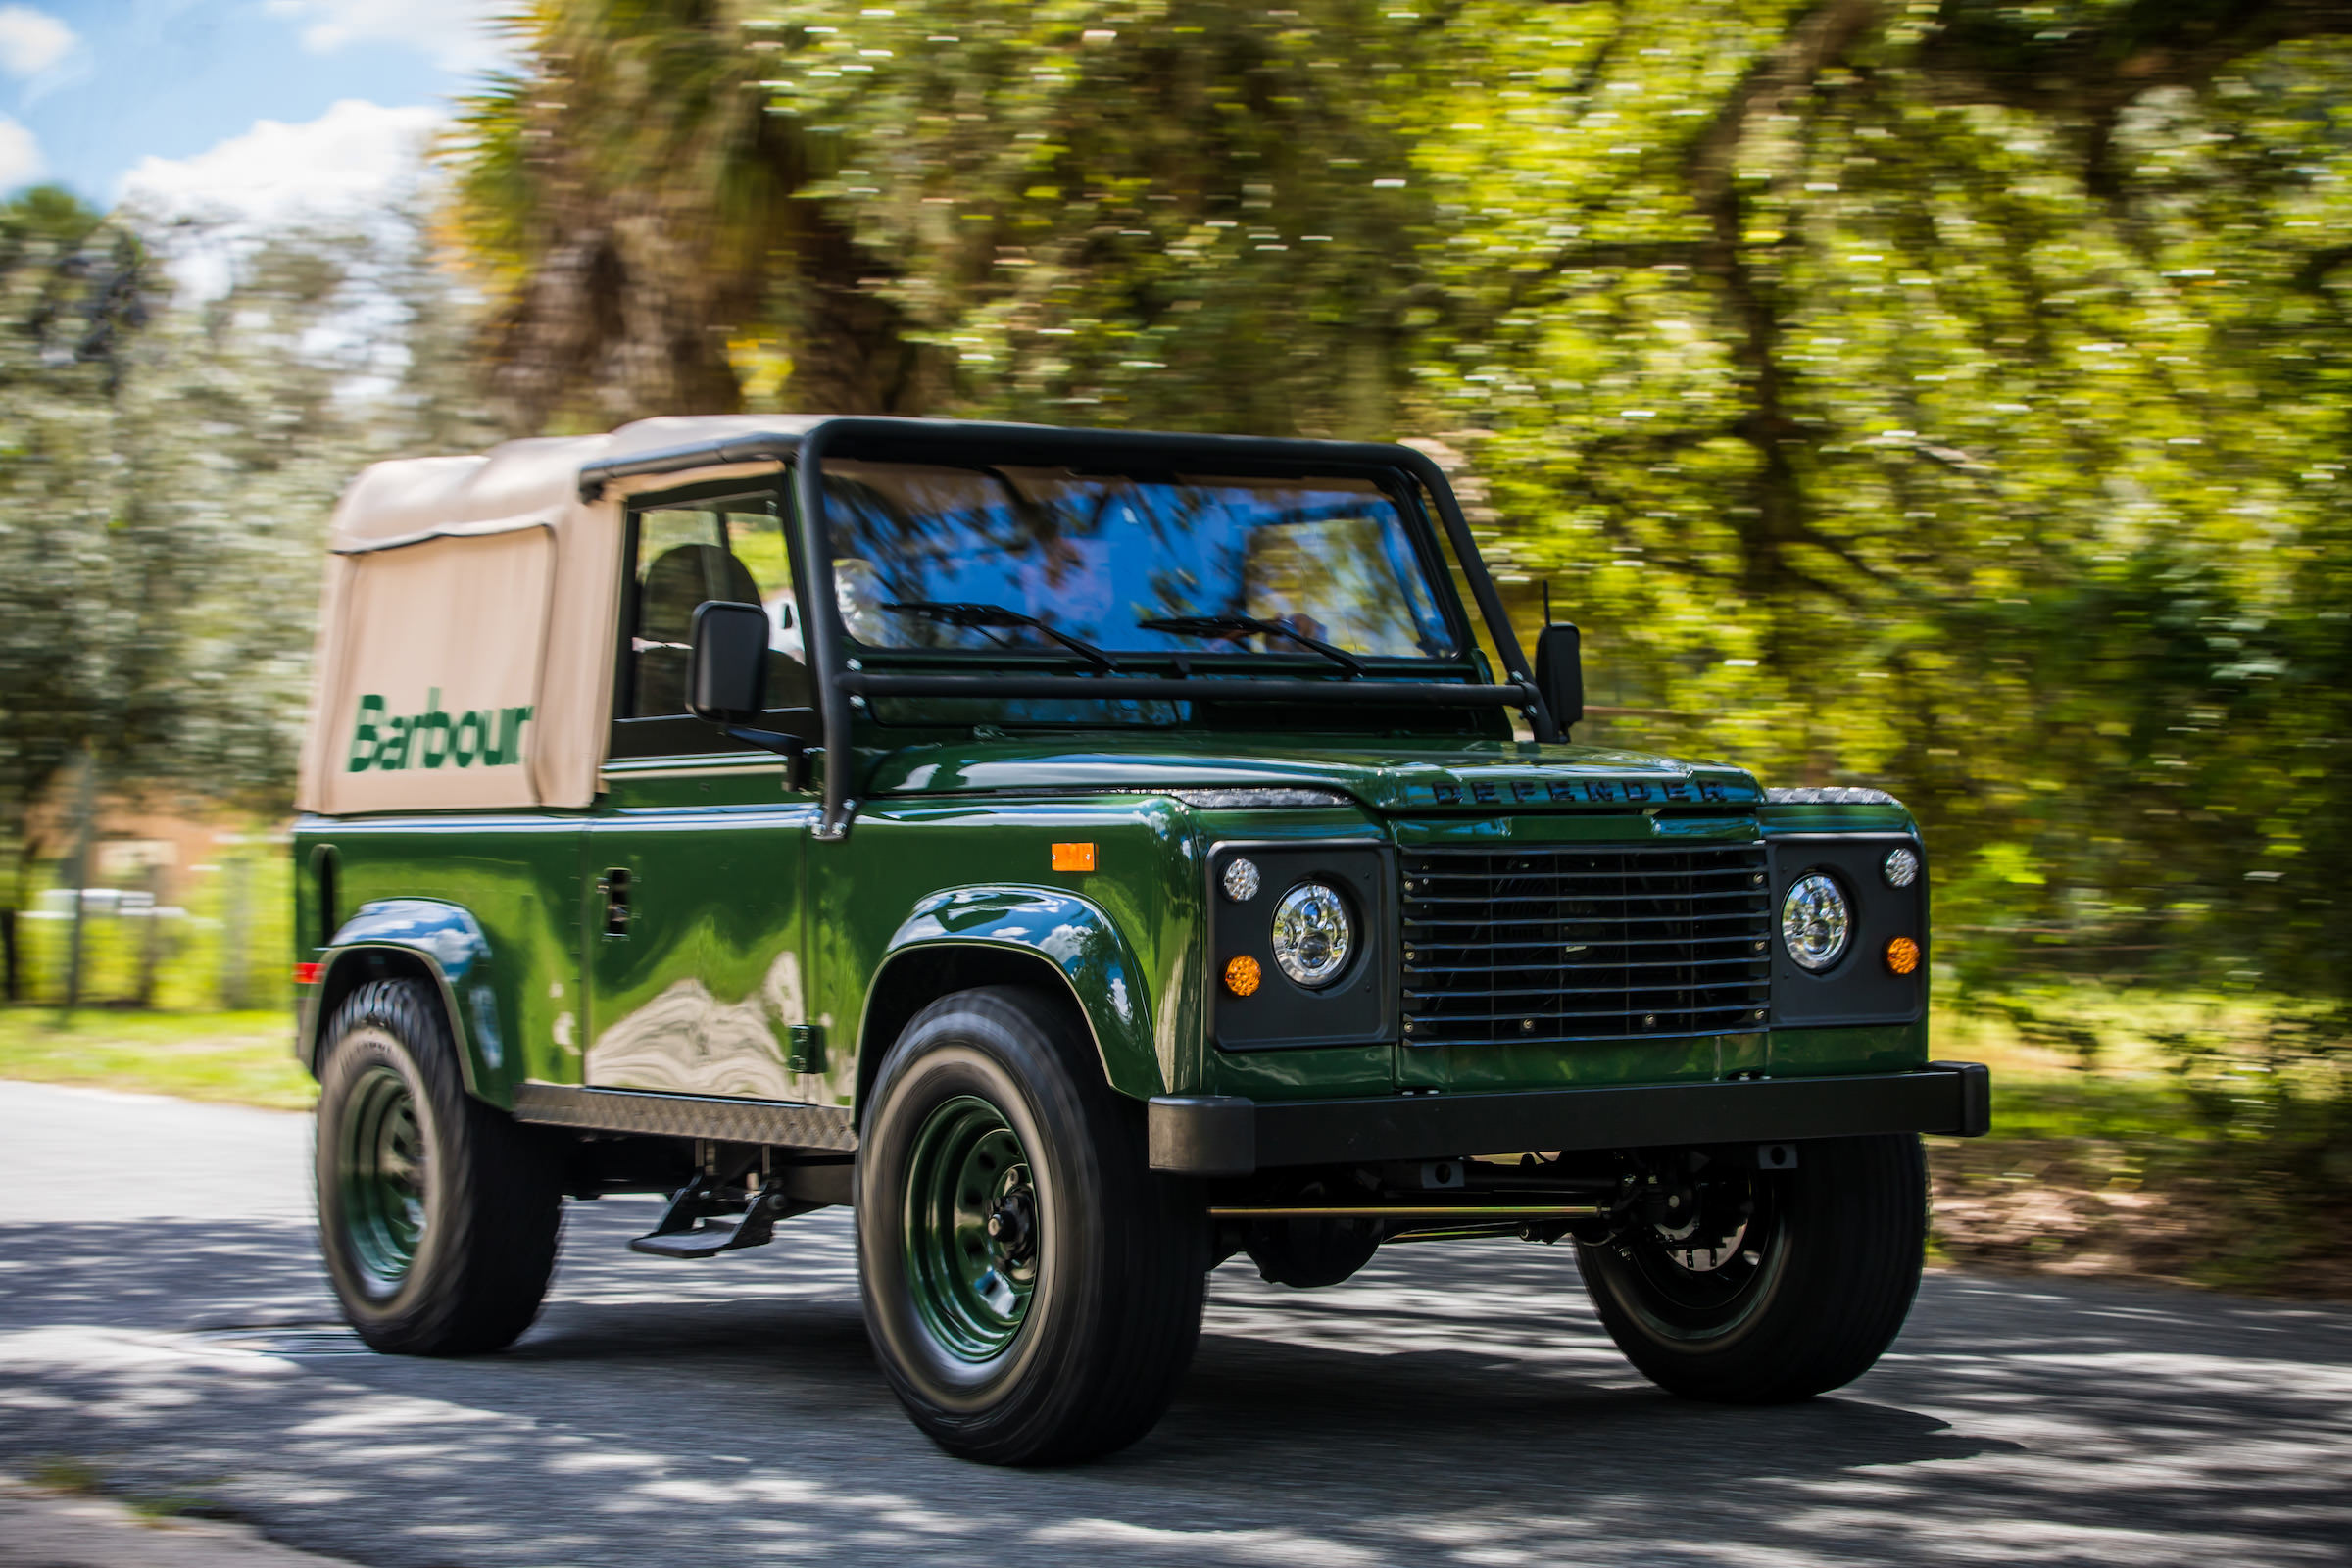 2017 Land Rover Discovery Interior >> Project Barbour by East Coast Defender